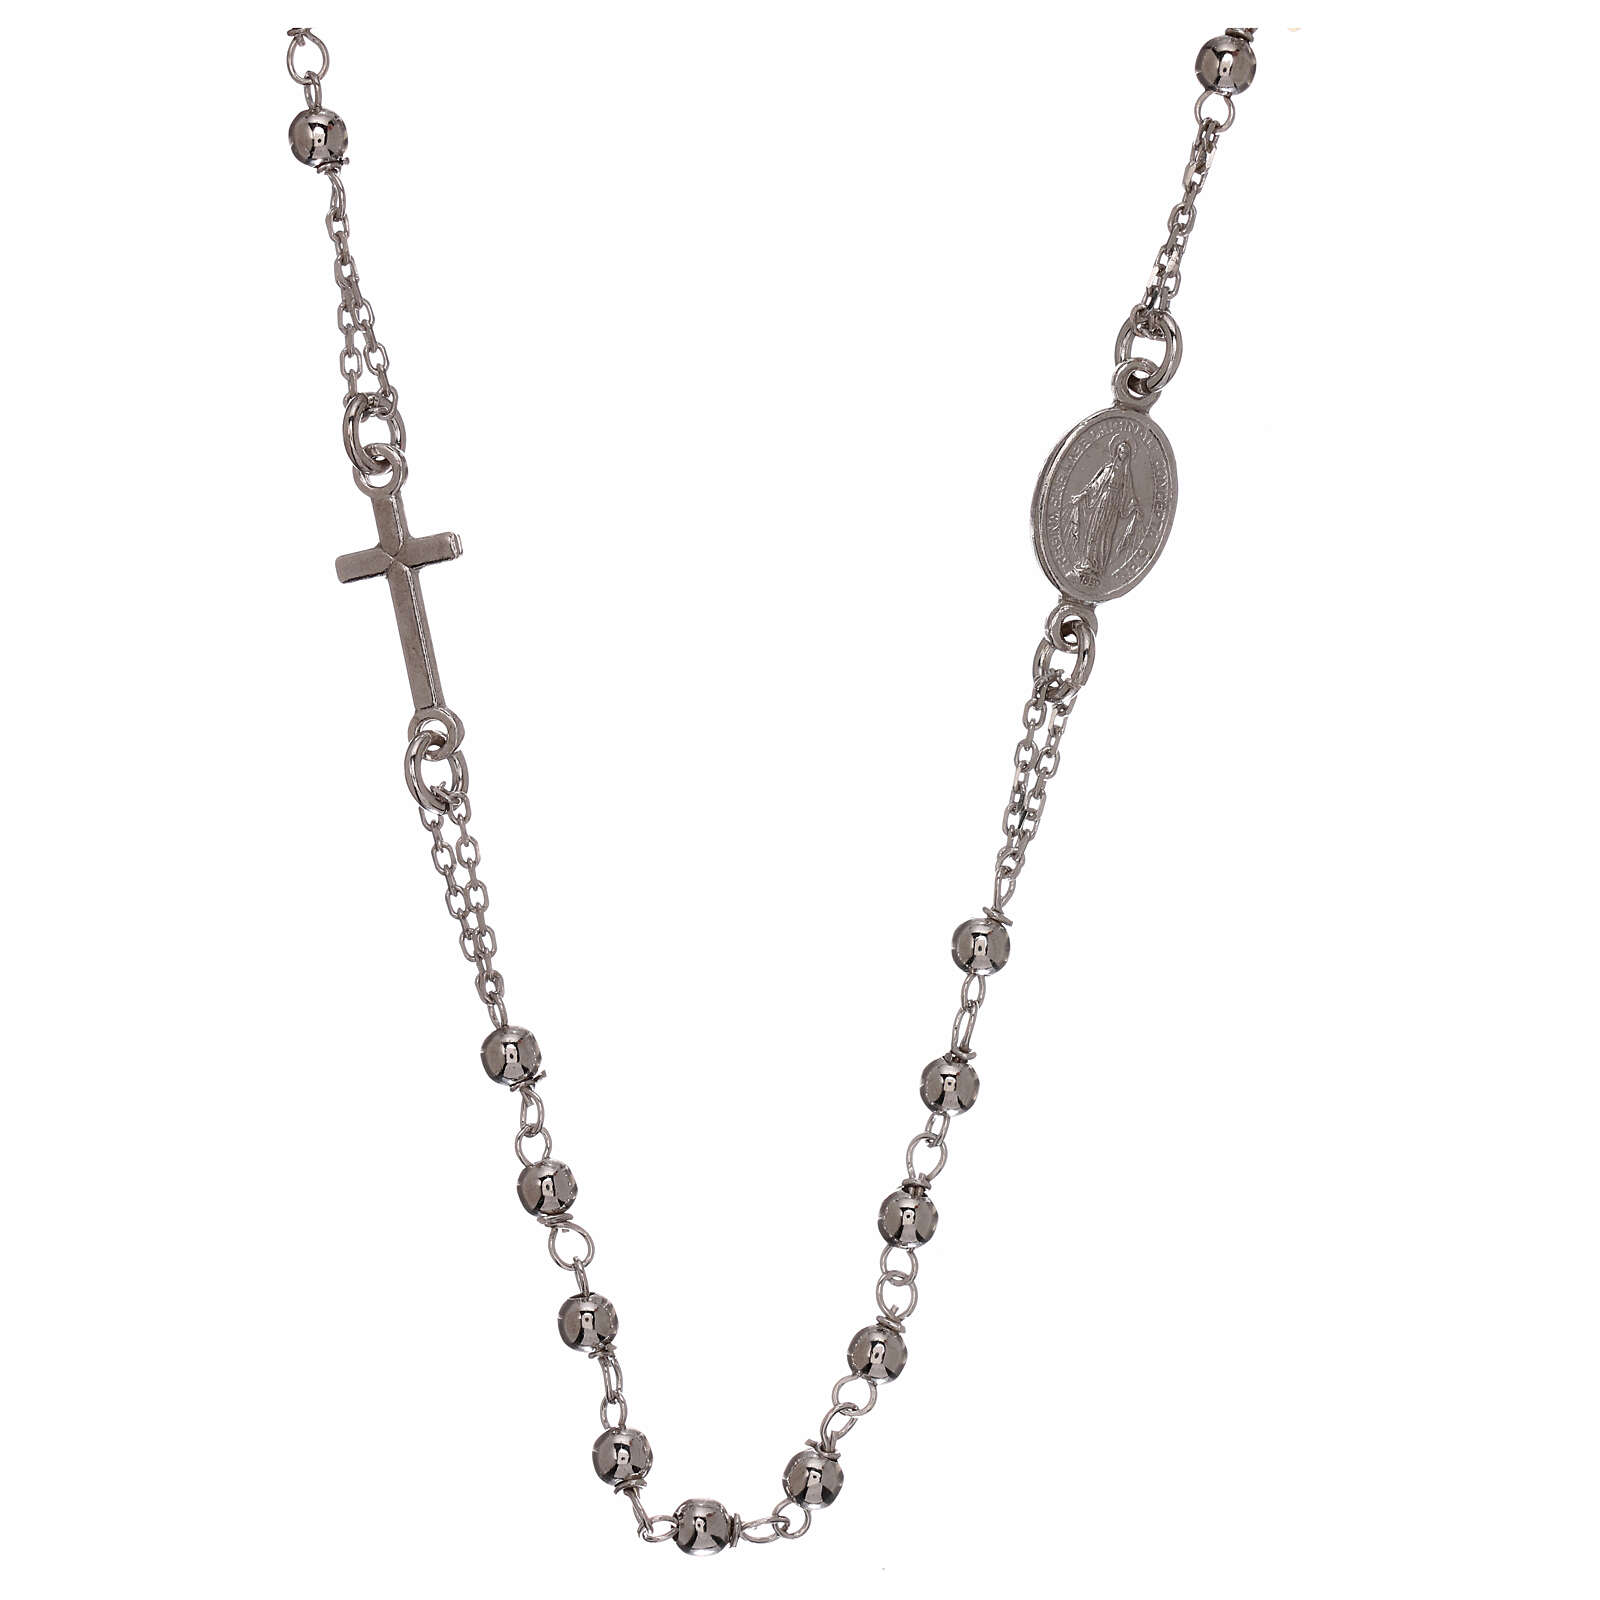 Rosary necklace 925 silver beads 1 mm 4